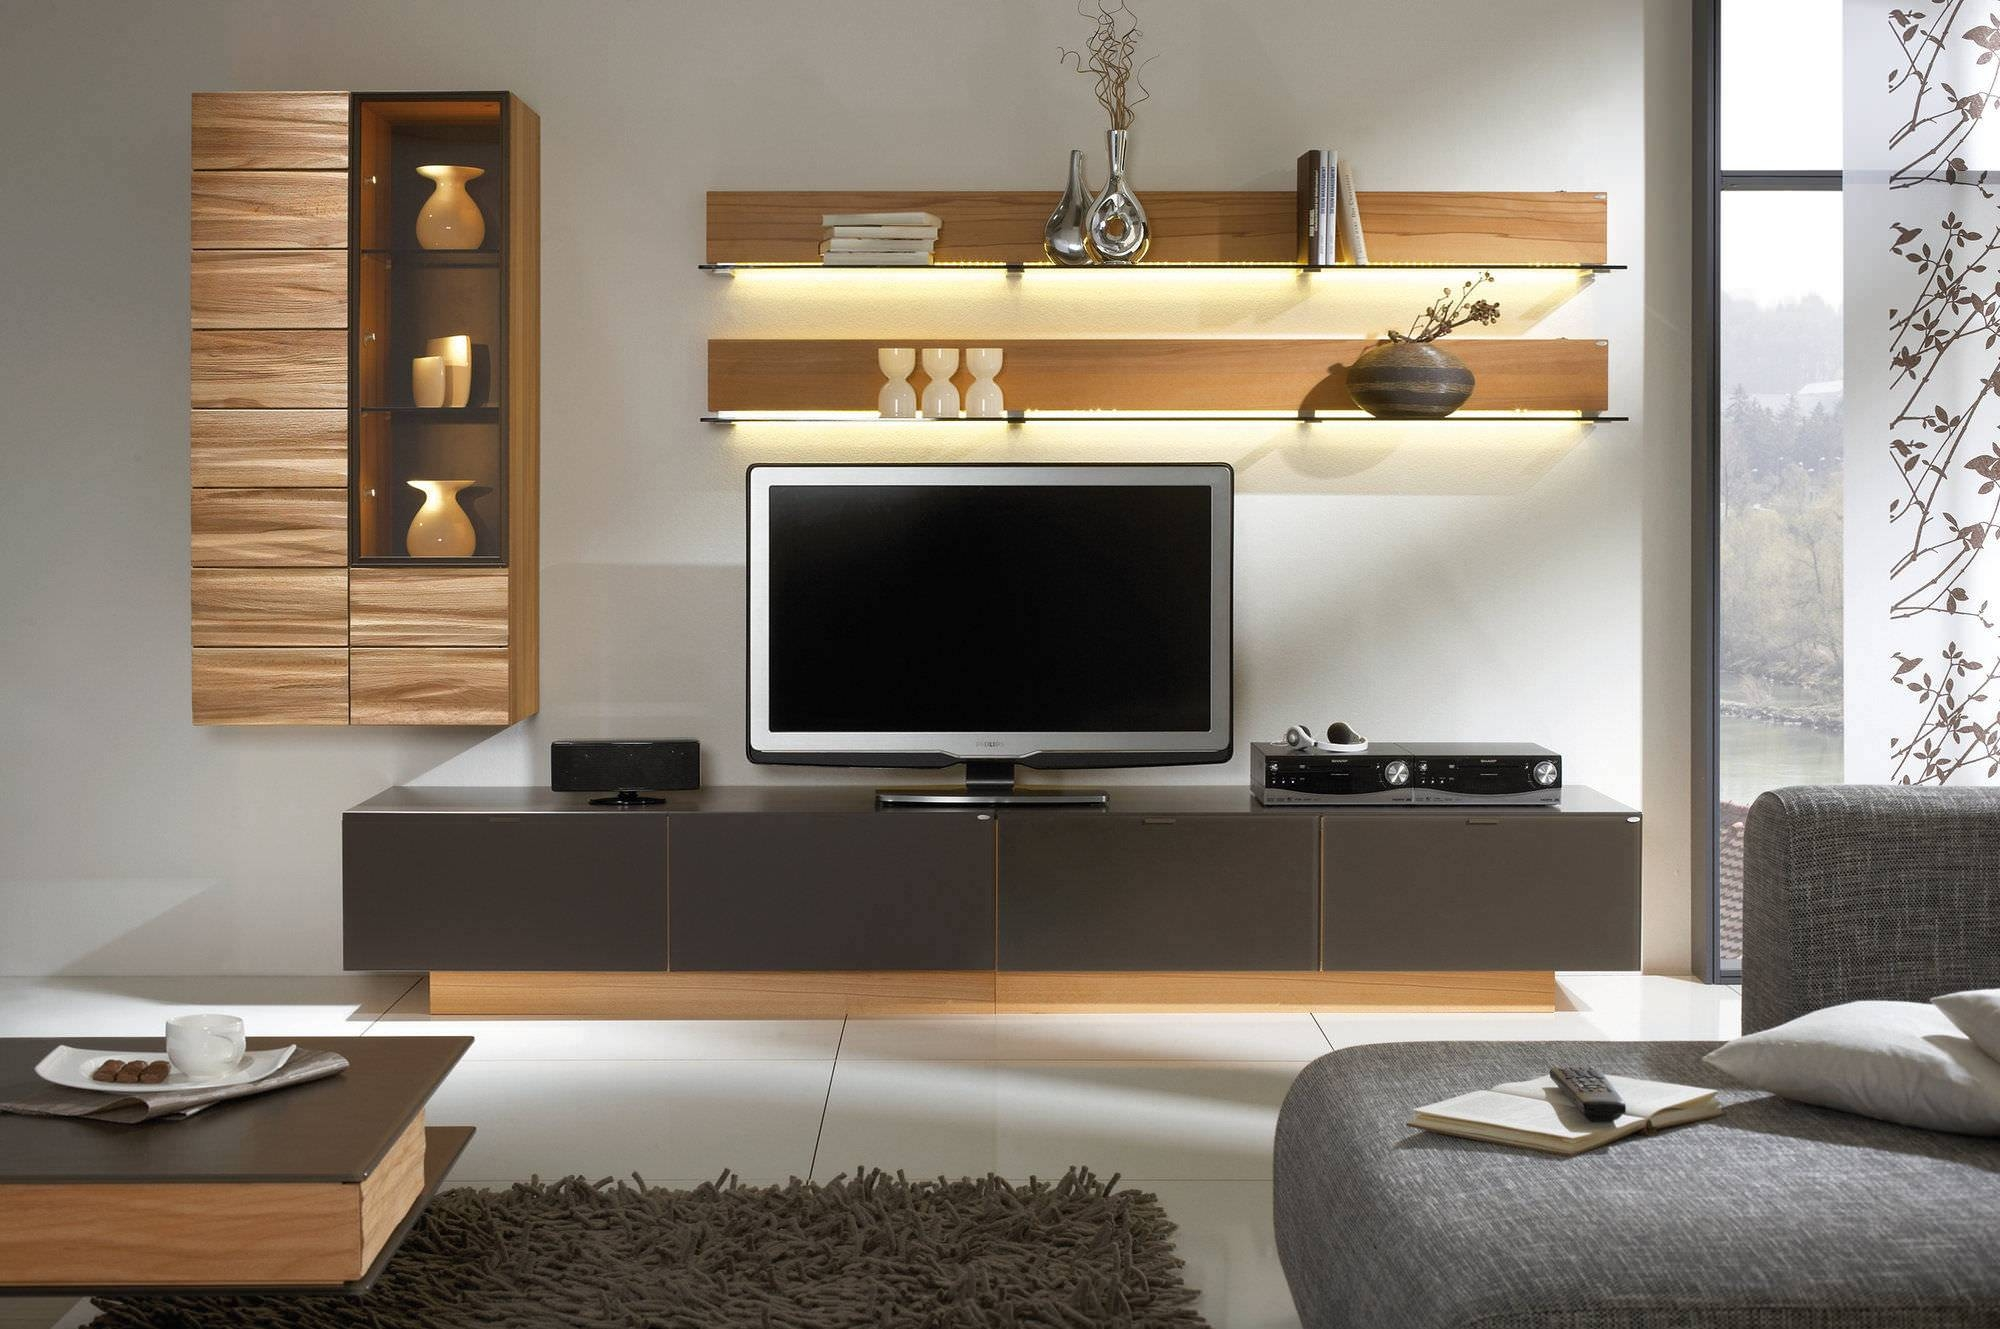 Bedroom : Tv Stand Designs For Living Room Led Tv Unit Tv Stand with regard to Bedroom Tv Shelves (Image 3 of 15)